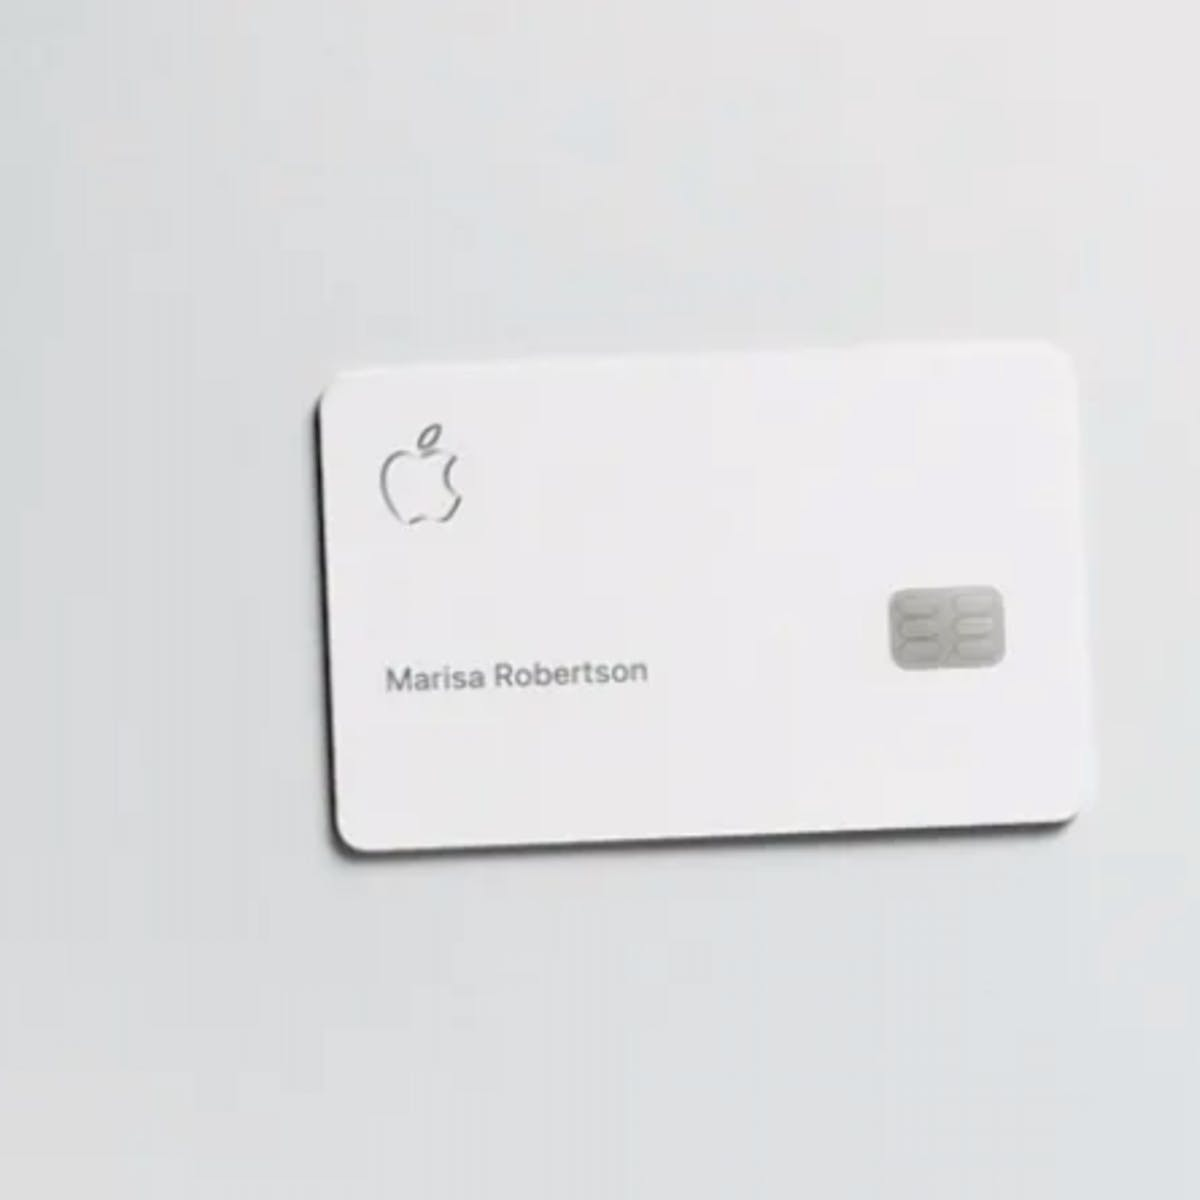 The Apple Credit Card Critics Are Missing the Real Source of Its Appeal